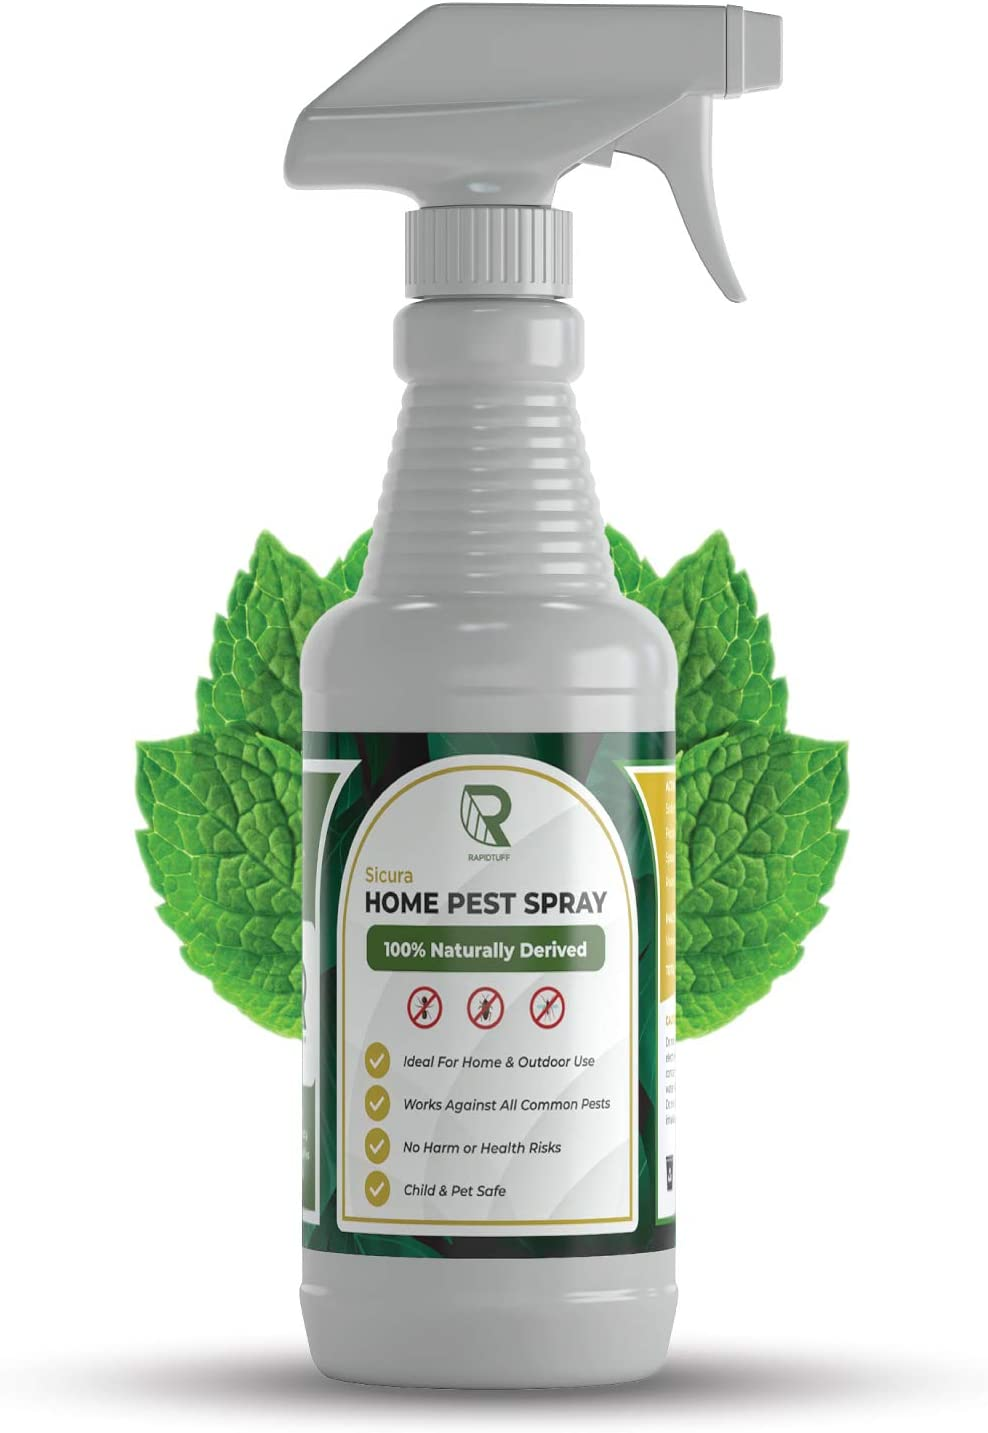 RAPIDTUFF Organic Home Pest Control Spray - Peppermint Oil - Kills & Repels, Ants, Roaches, Spiders, and Other Pests Guaranteed - All Natural - Pet Safe - (Indoor/Outdoor Spray - 16oz